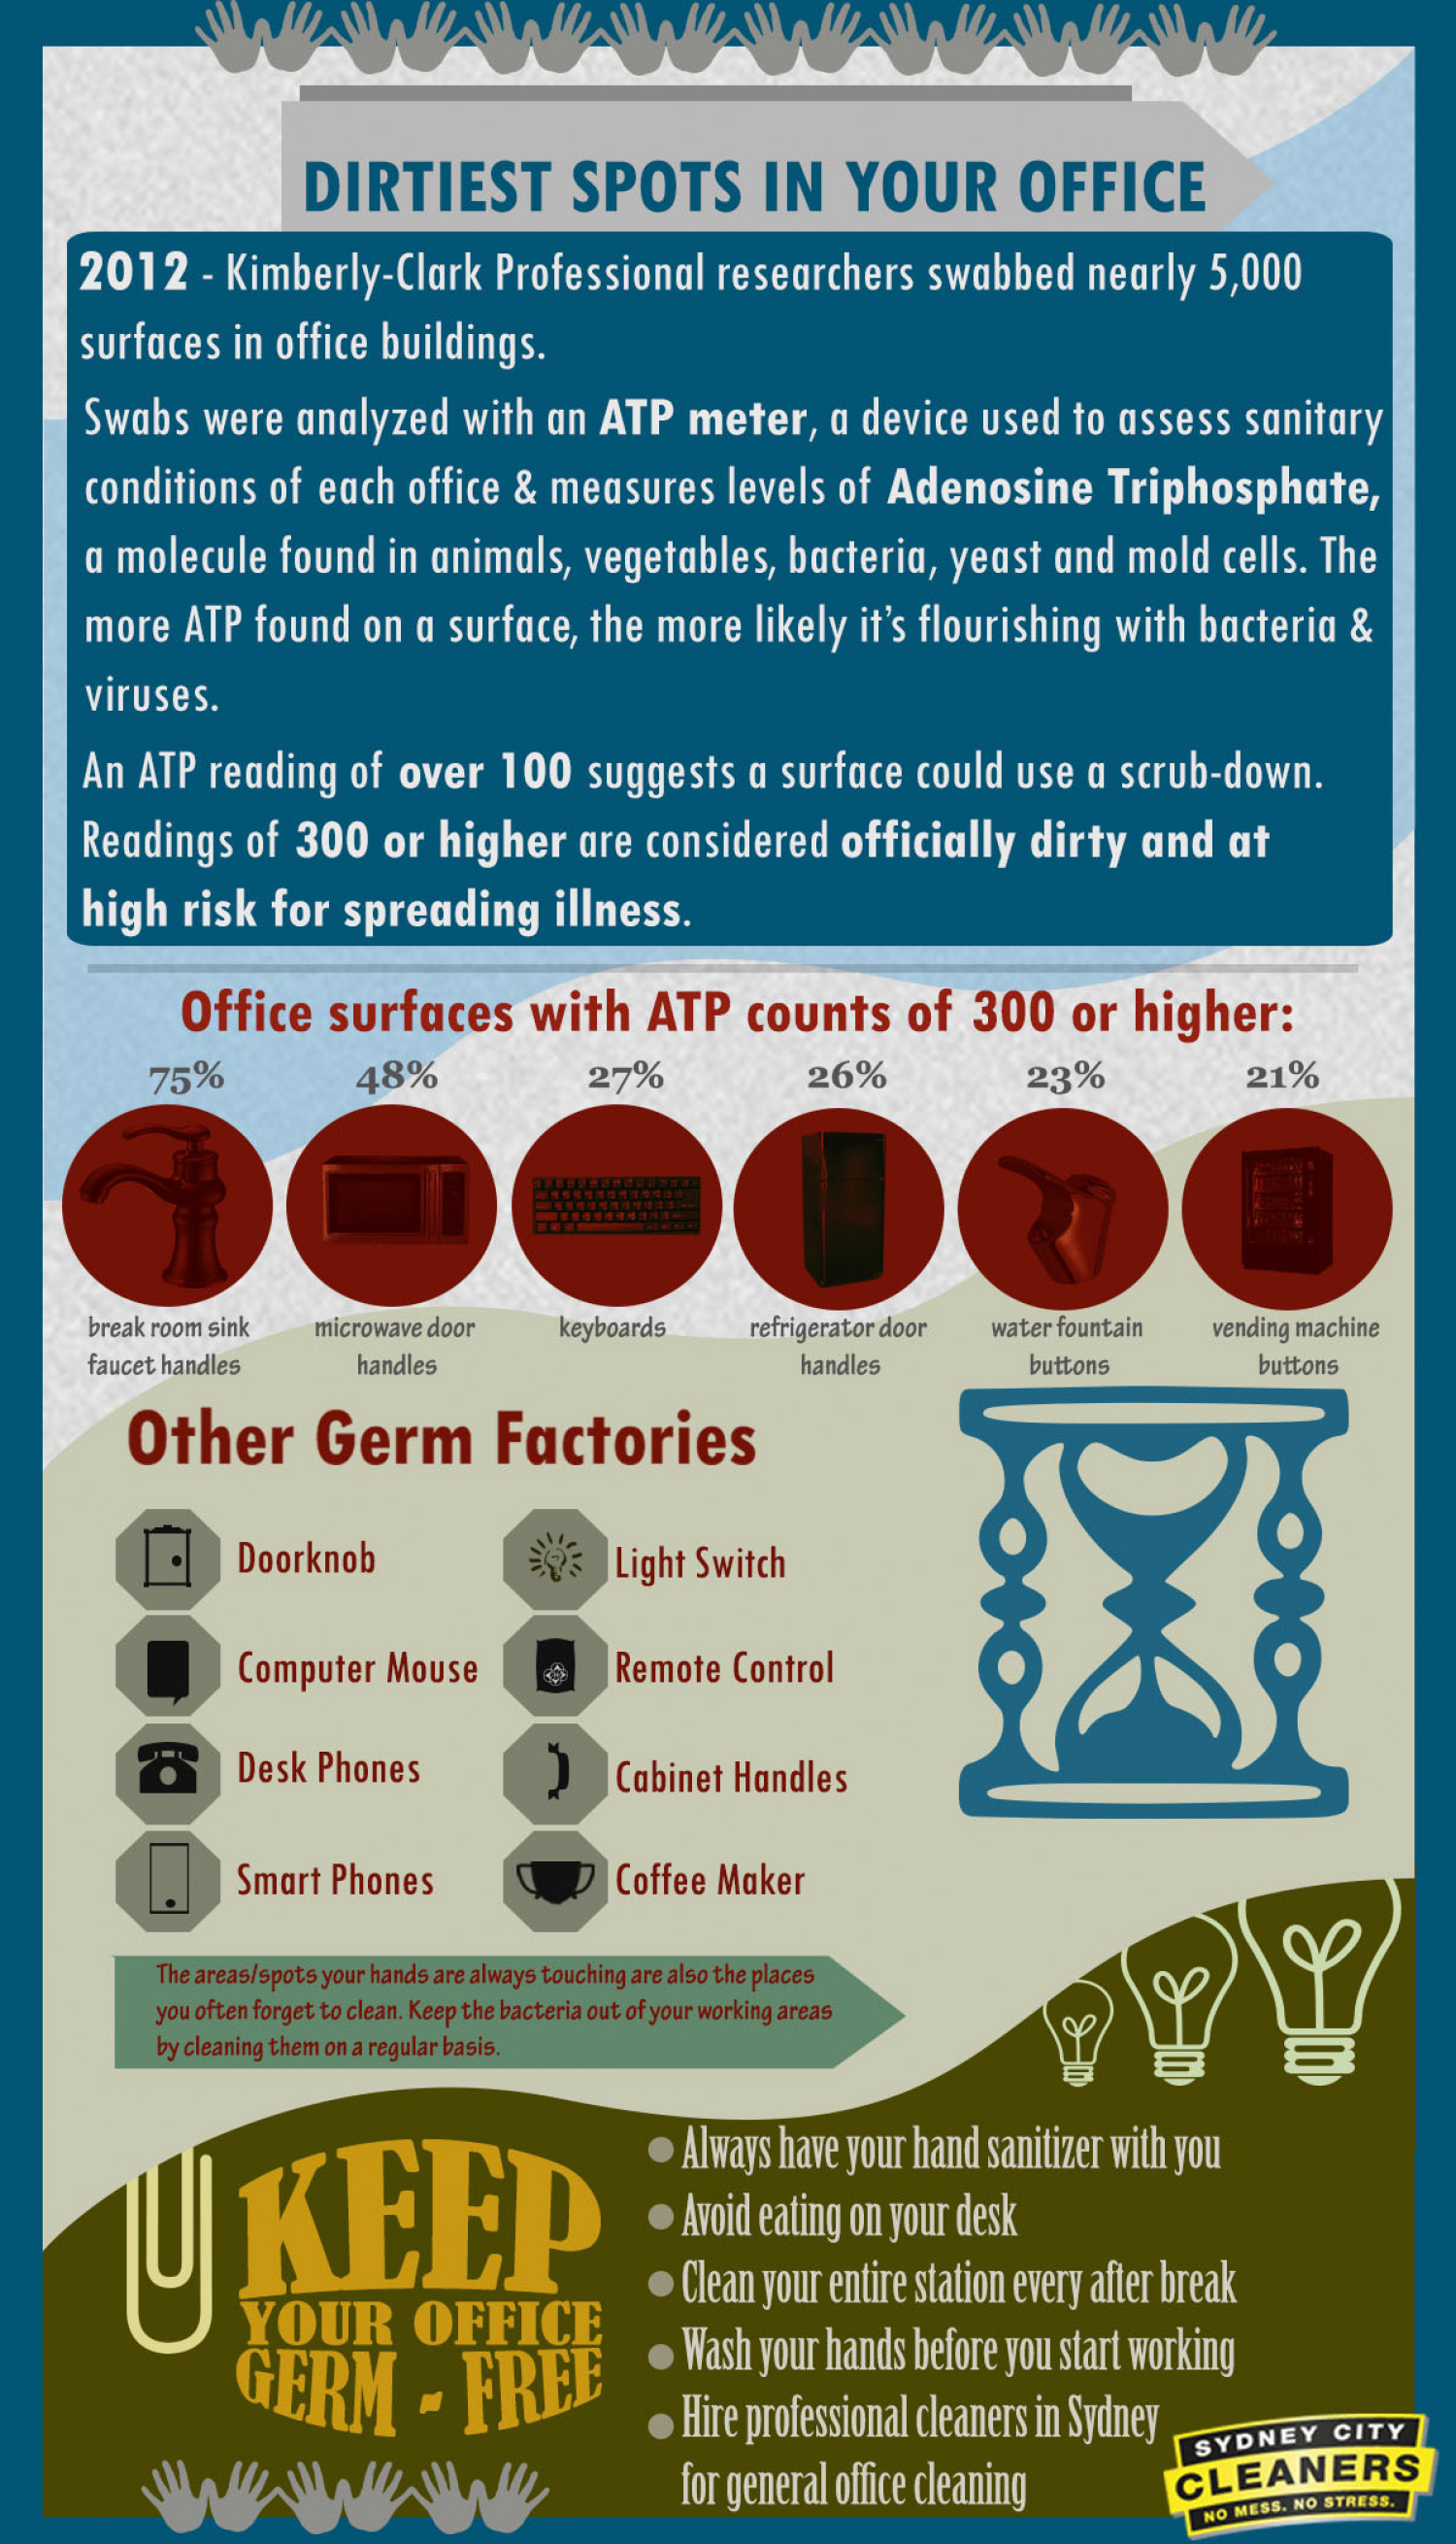 Dirtiest Spots in Your Office Infographic